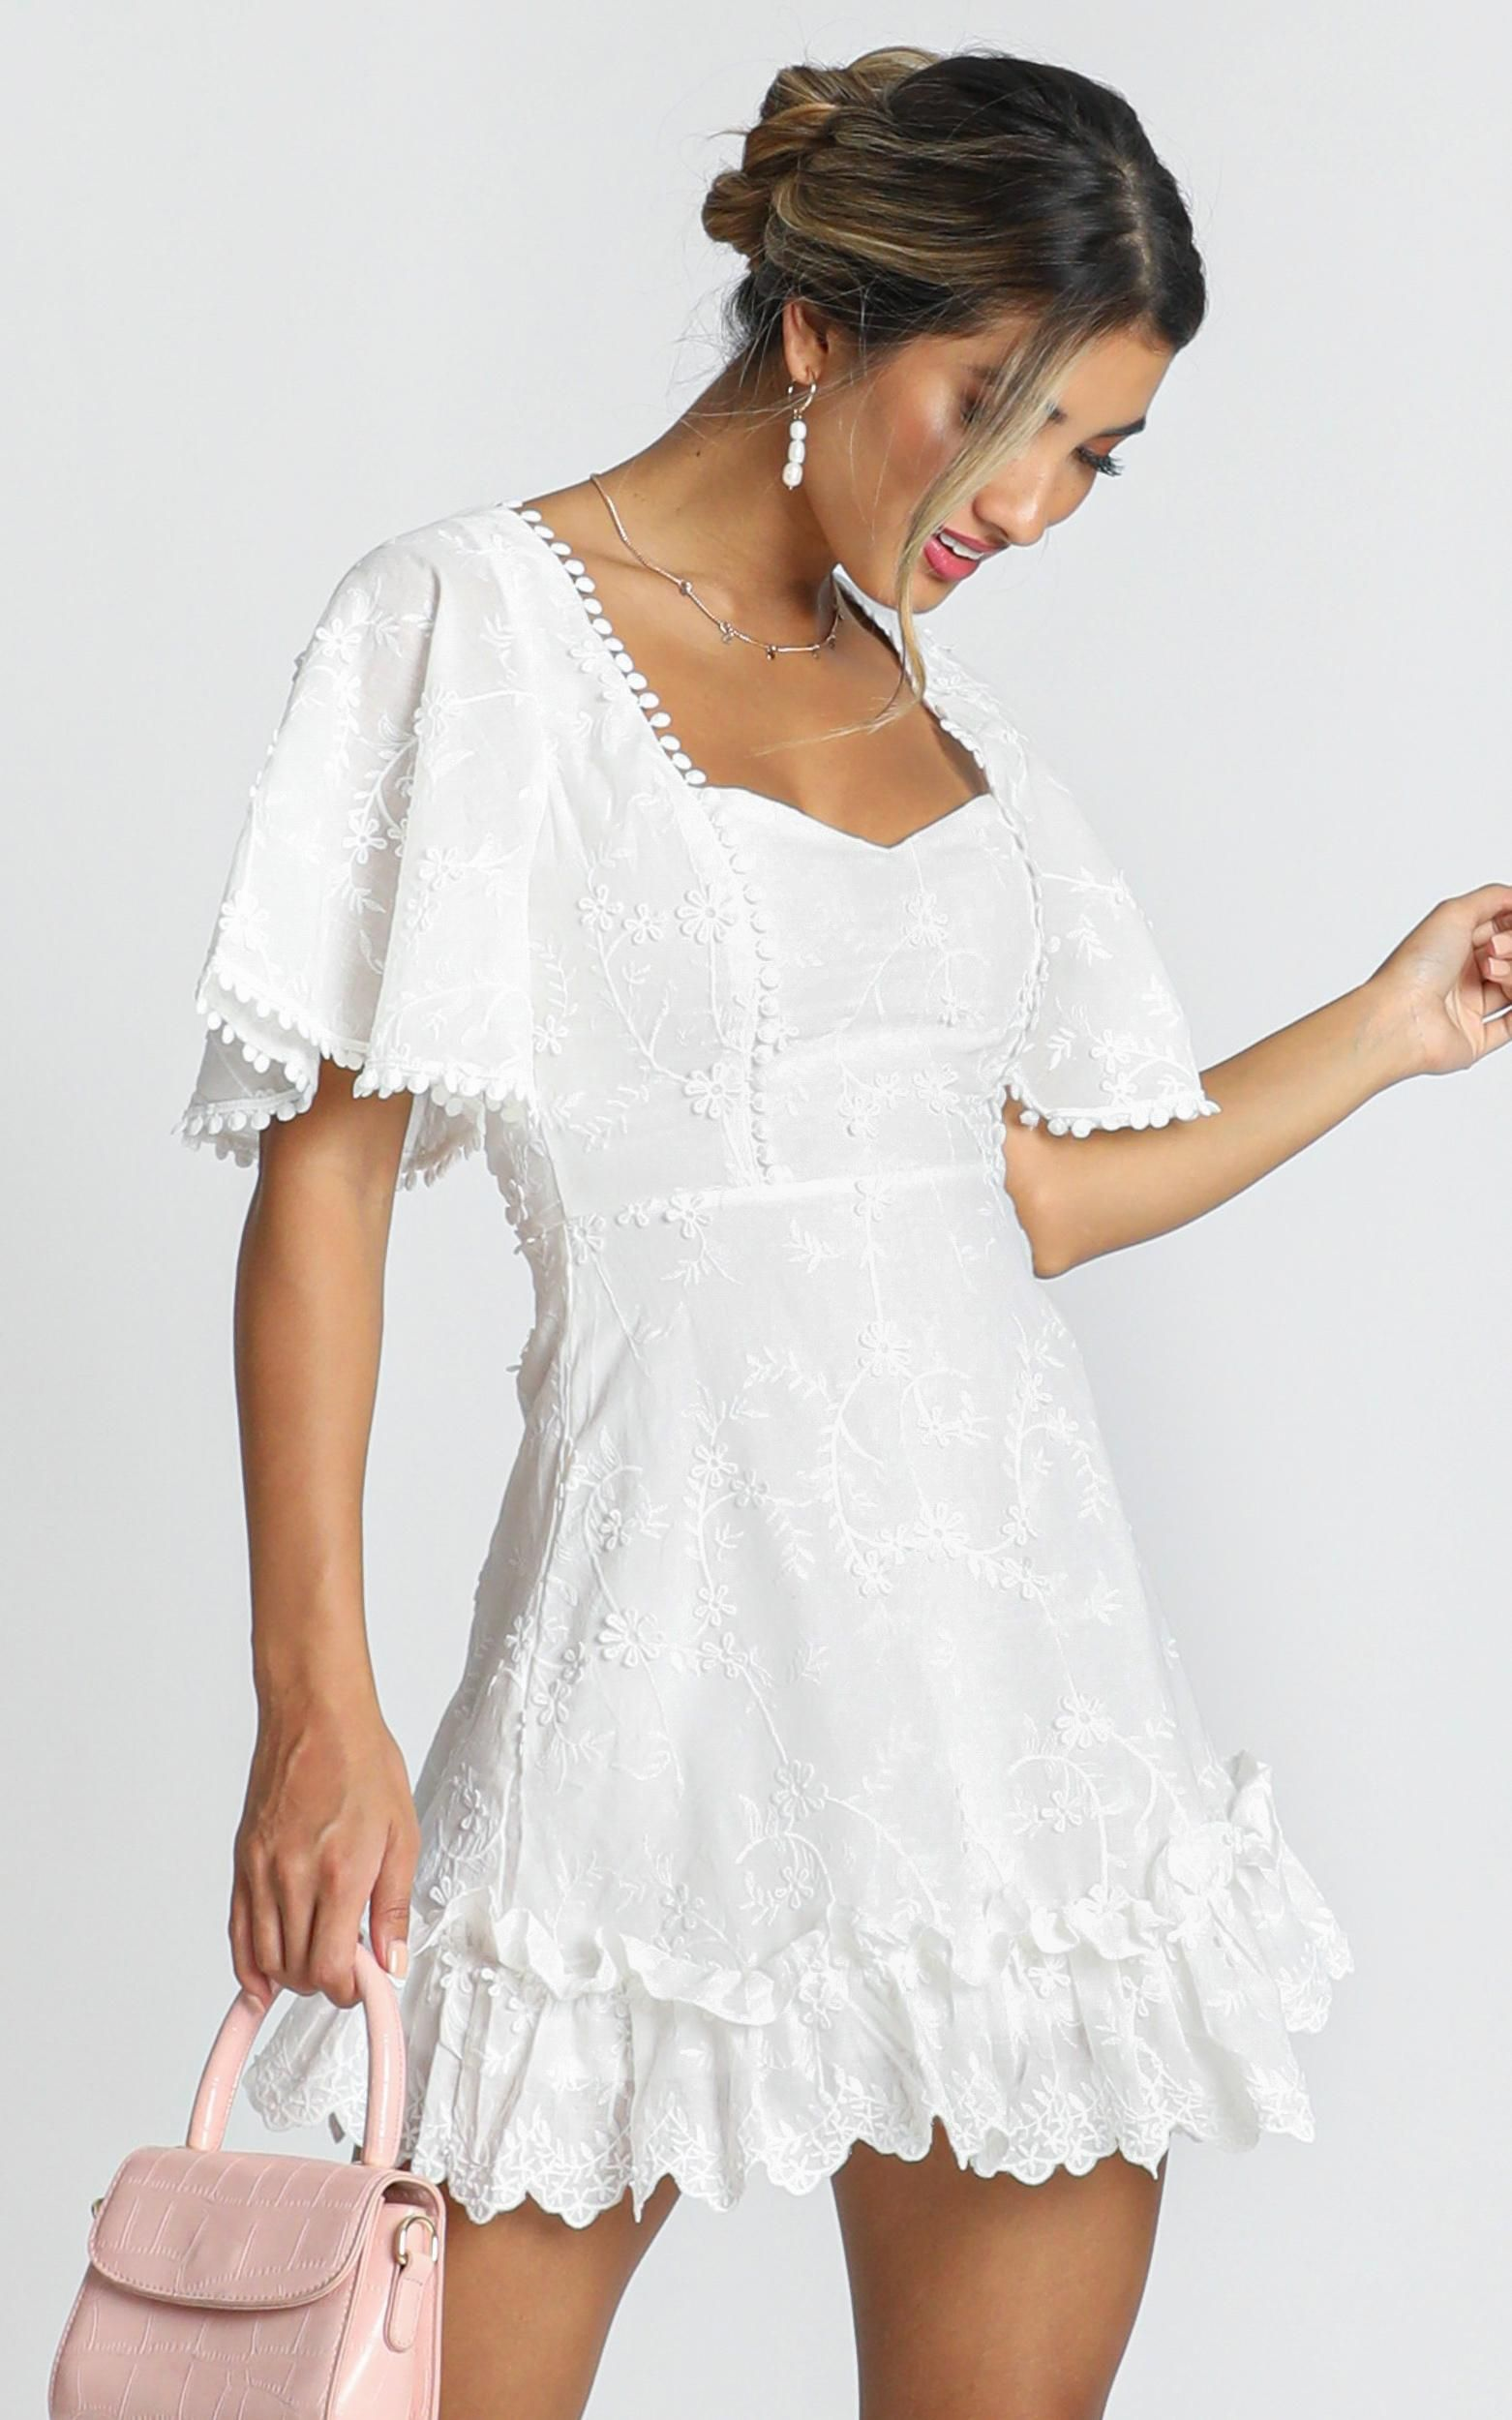 Fancy A Spritz Dress In White Embroidery Showpo In 2021 White Dress Dresses White Embroidery [ 2500 x 1562 Pixel ]